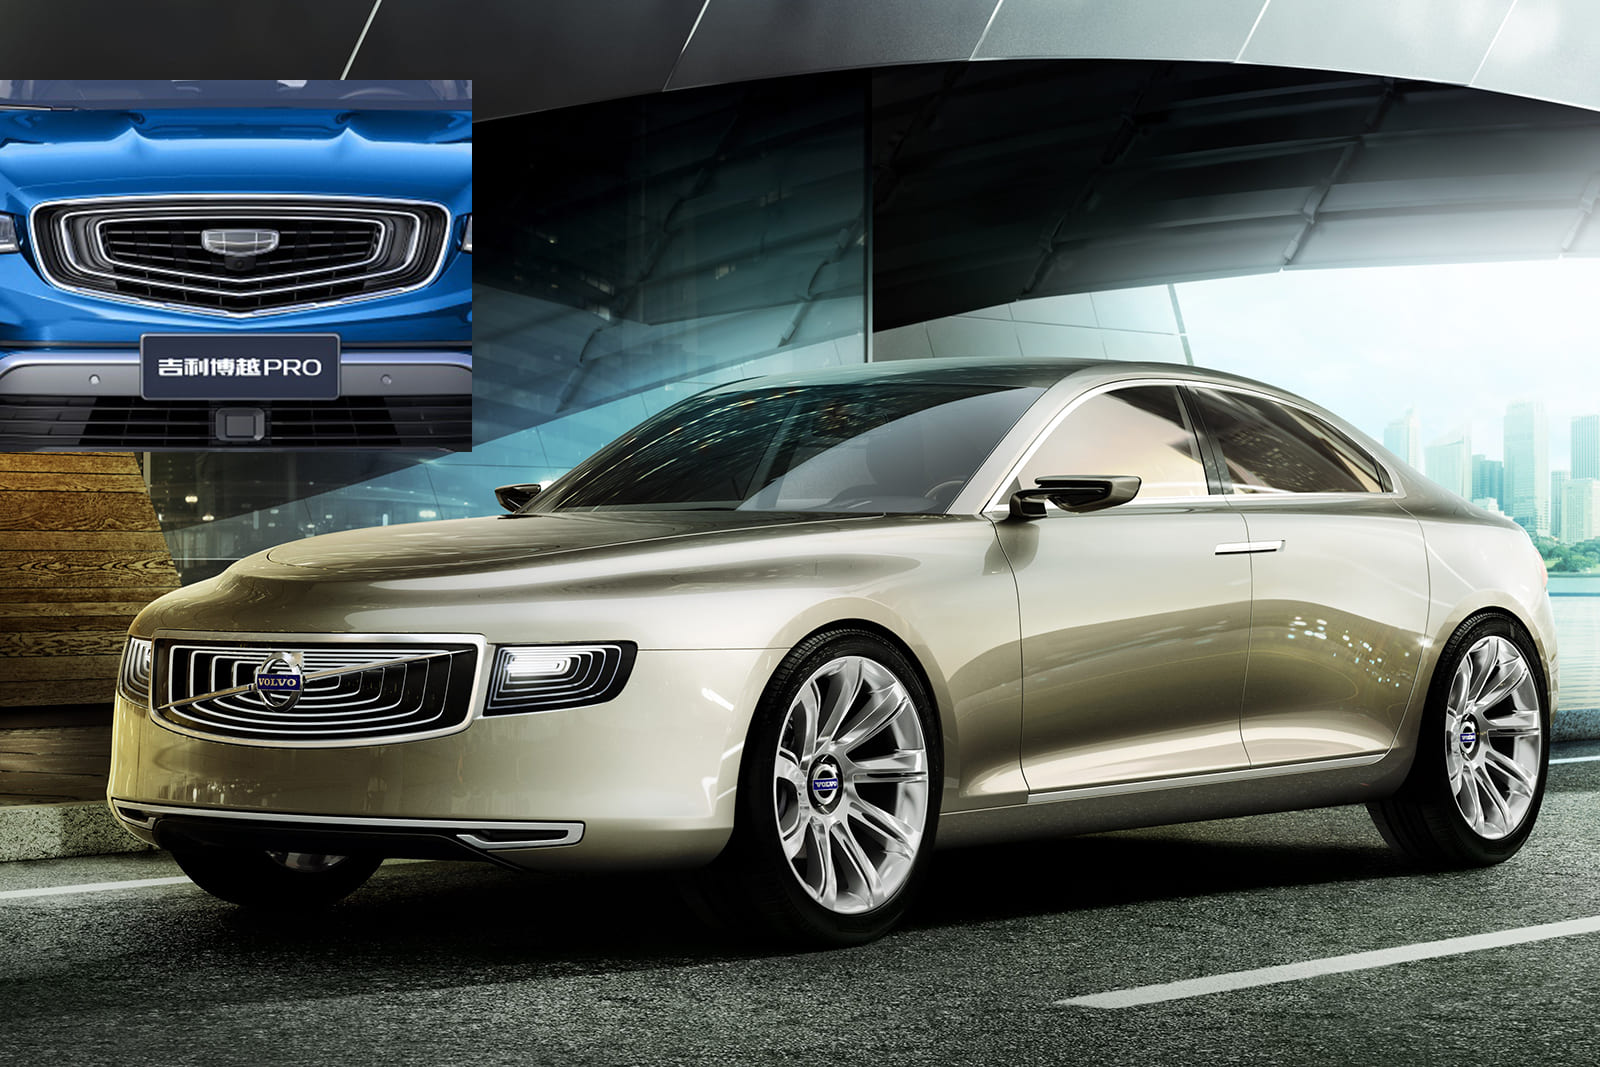 Geely's Expanding Cosmos grille first appeared on the Volvo Concept Universe in 2011